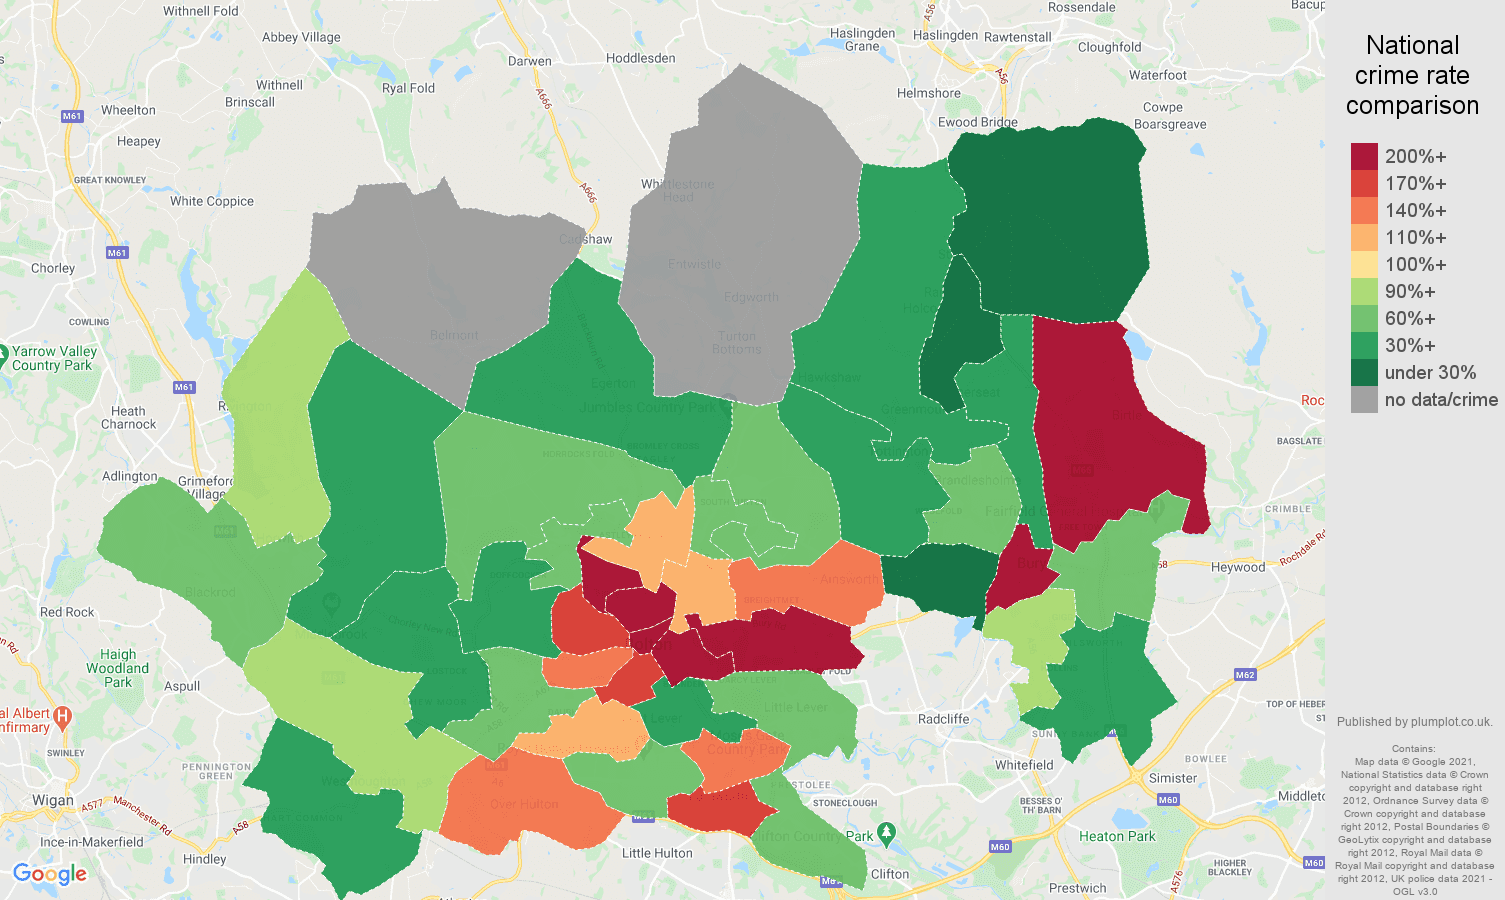 Bolton robbery crime rate comparison map